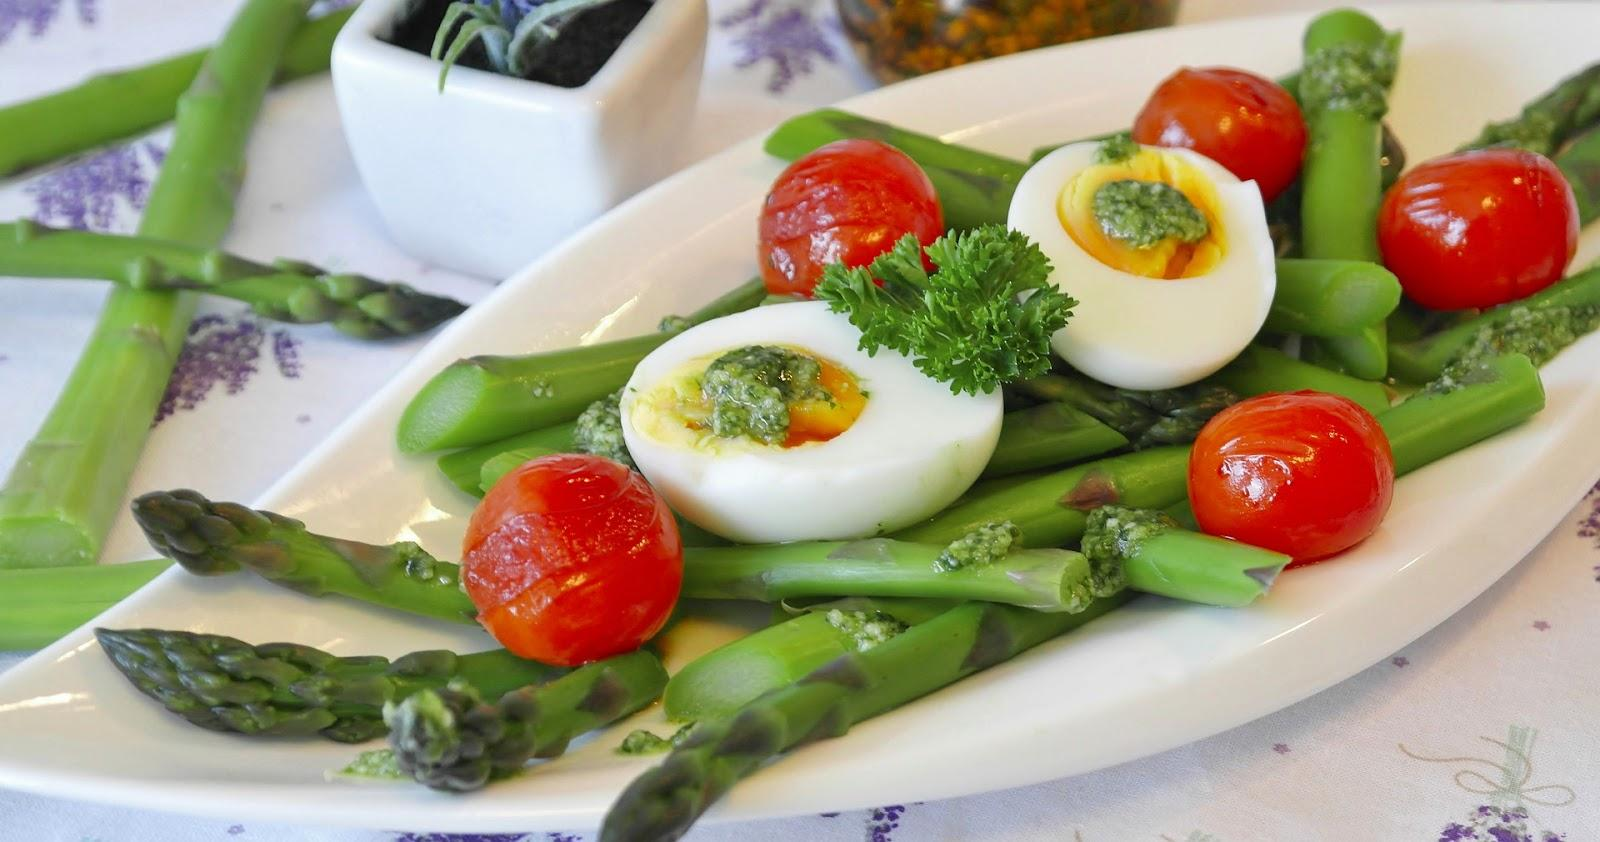 Healthy low carb diet